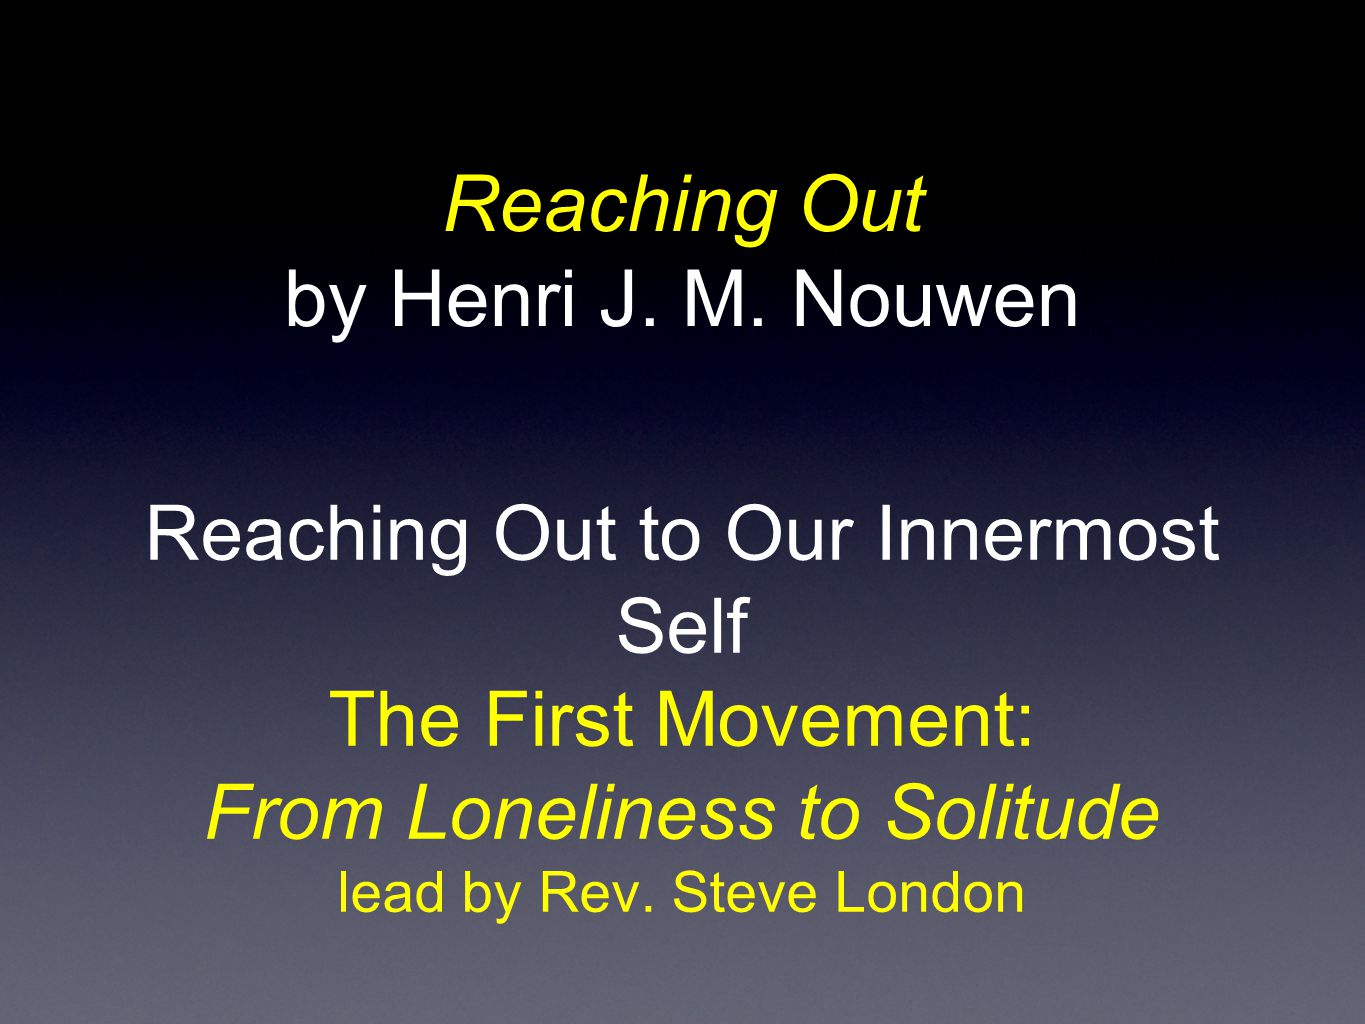 Reaching Out to Fellow Human Beings The Second Movement: From Hostility to Hospitality lead by Mark Peppler Reaching Out by Henri J.